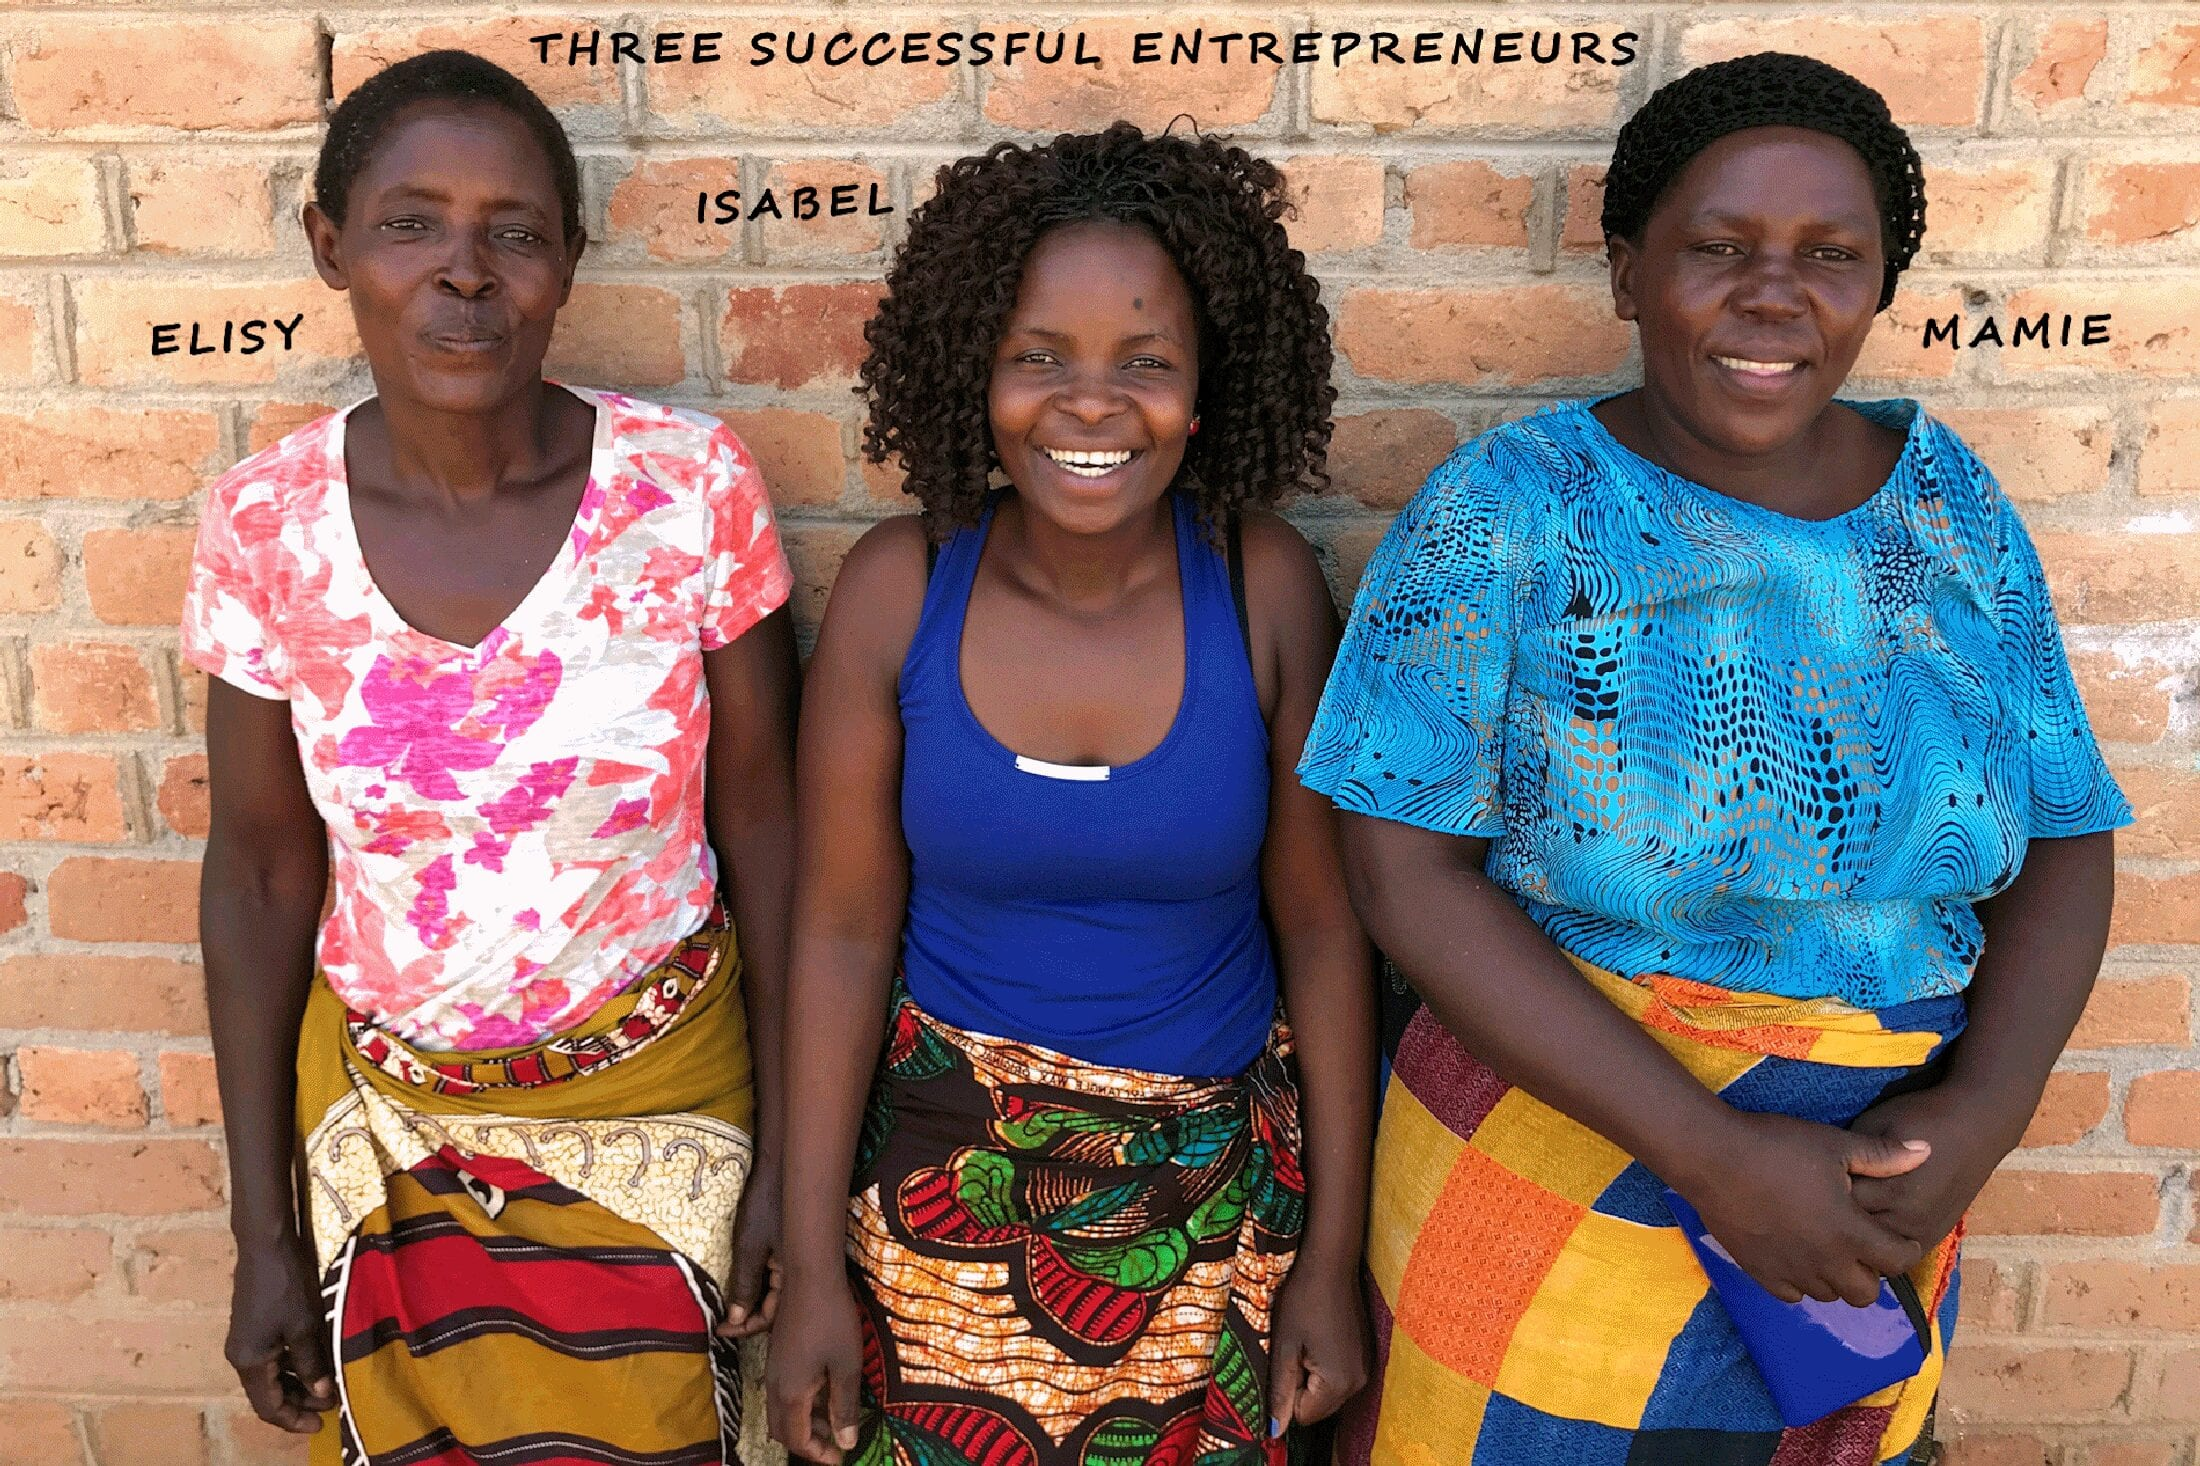 Three successful women entrepreneurs: Elisy, Isabel and Mamie